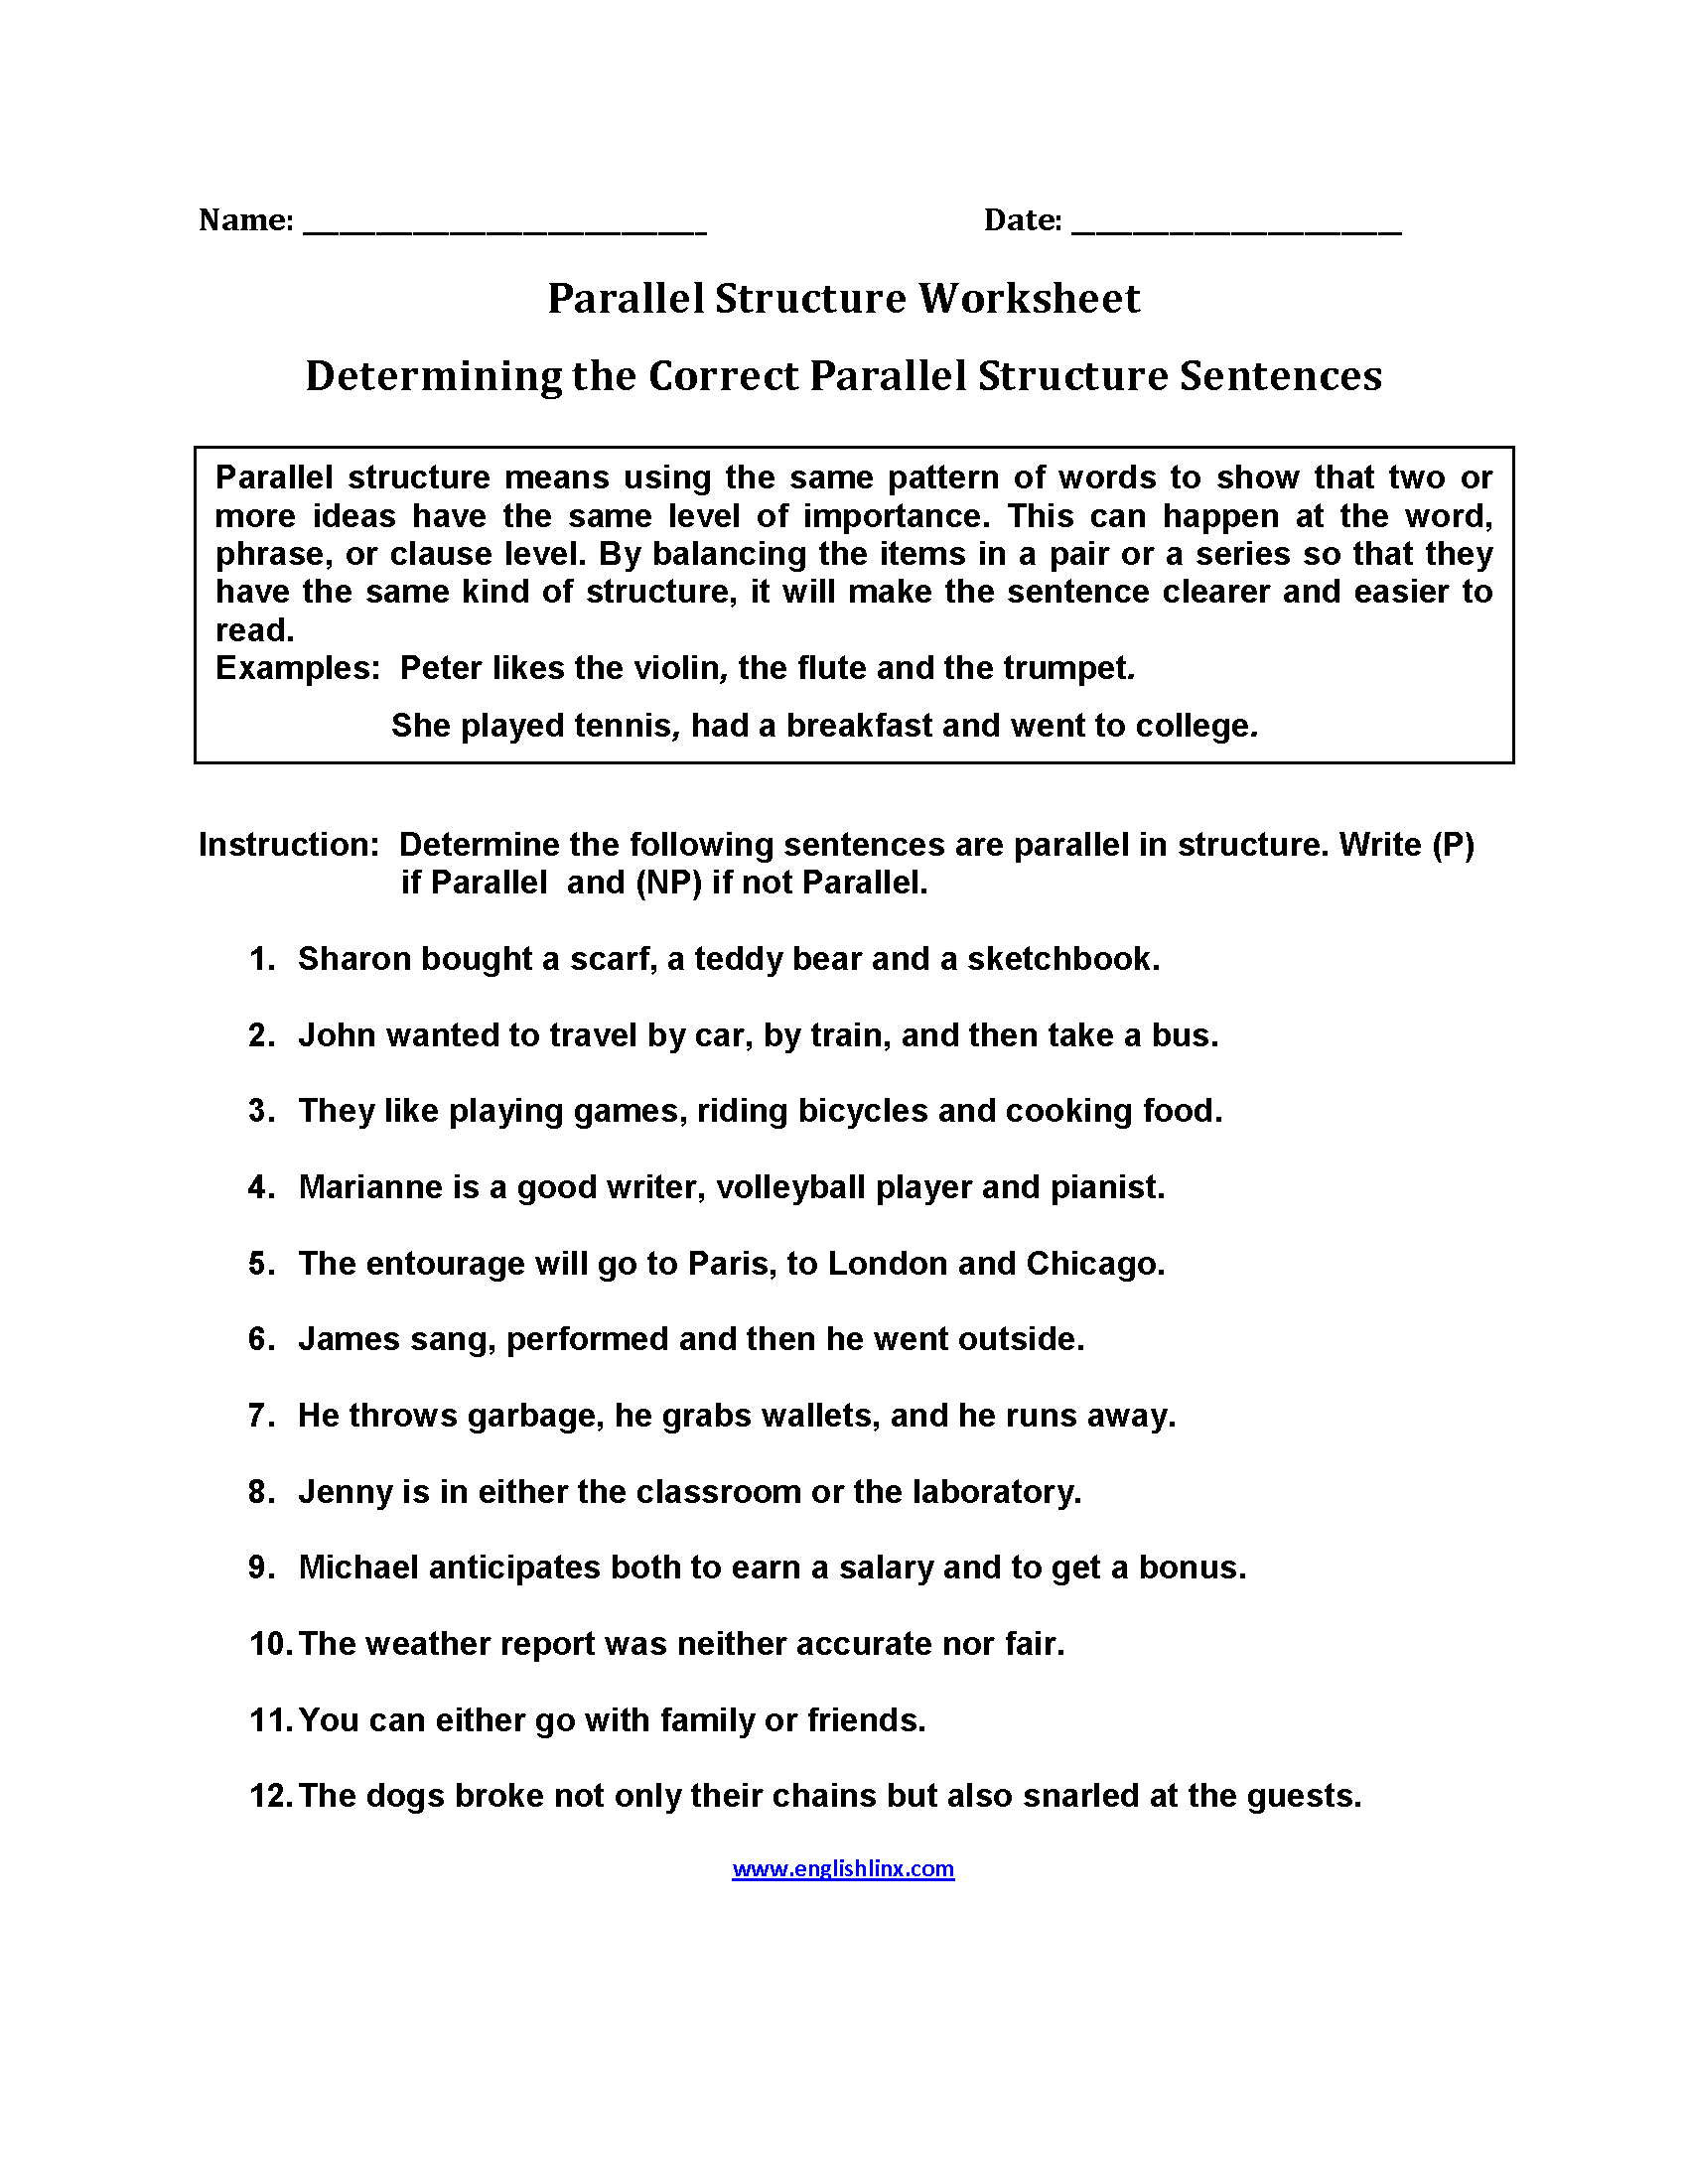 Parallel Structure Worksheets | Determining Correct Parallel ...